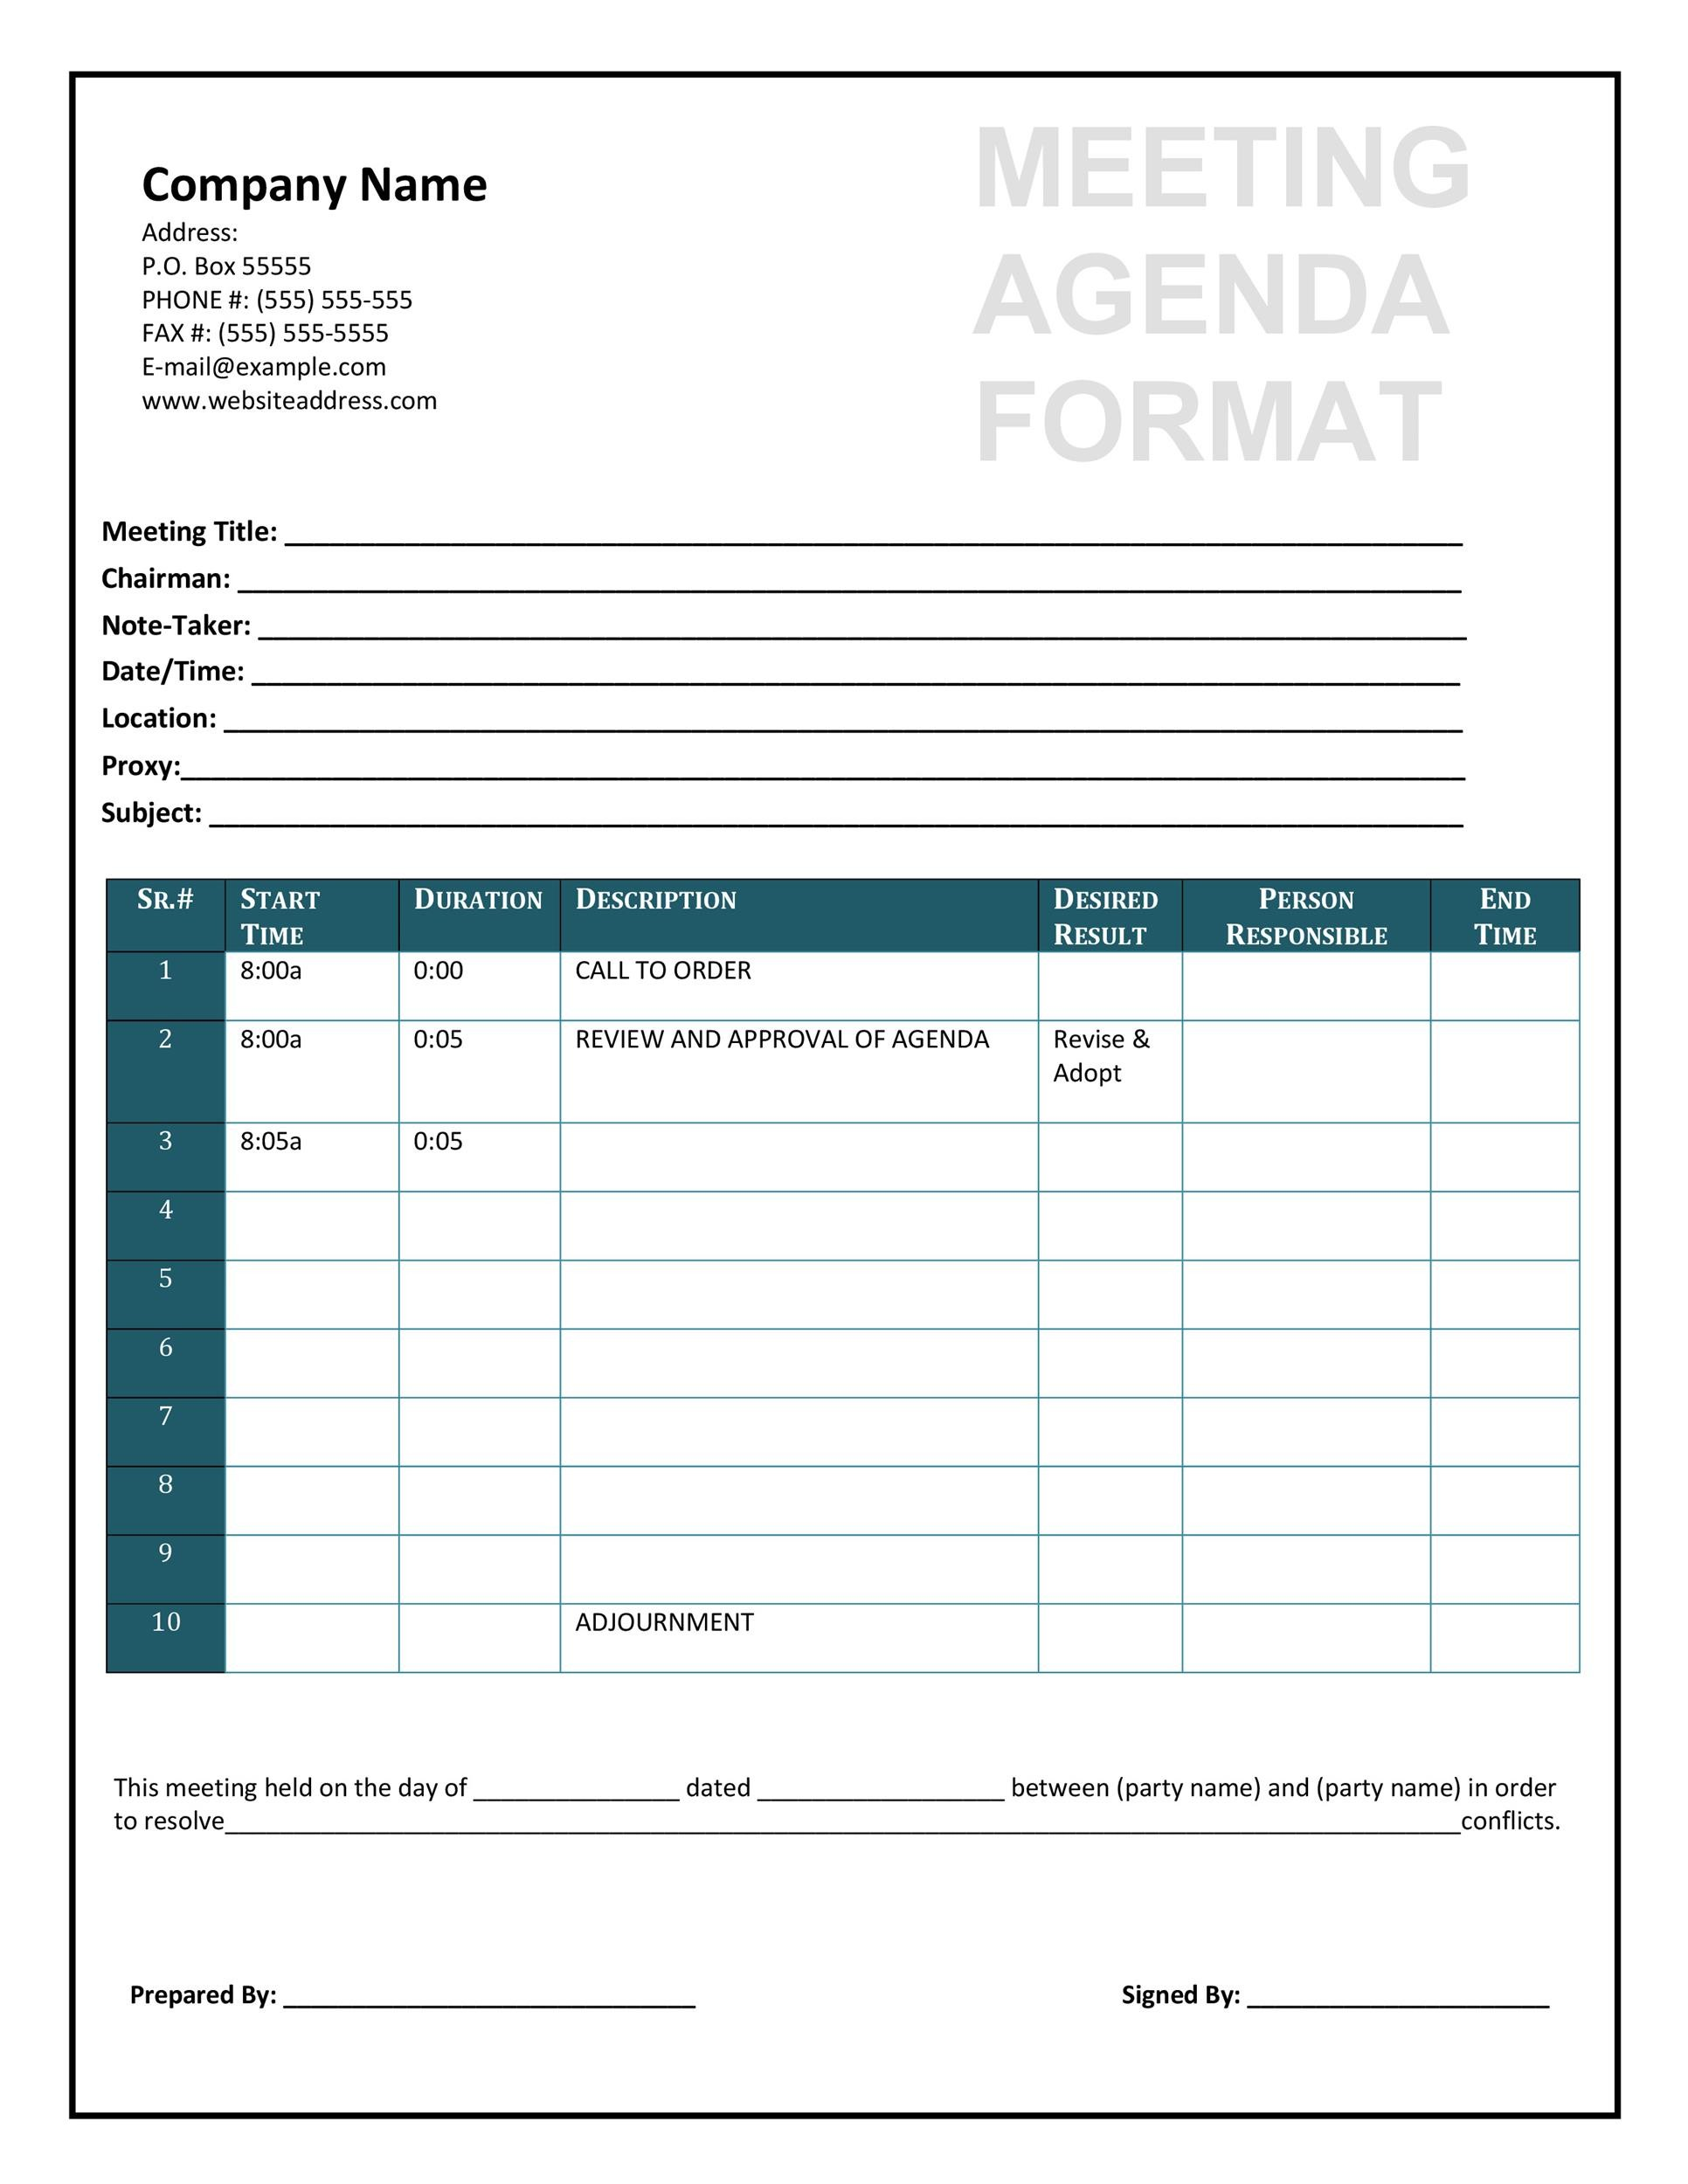 sample agenda form